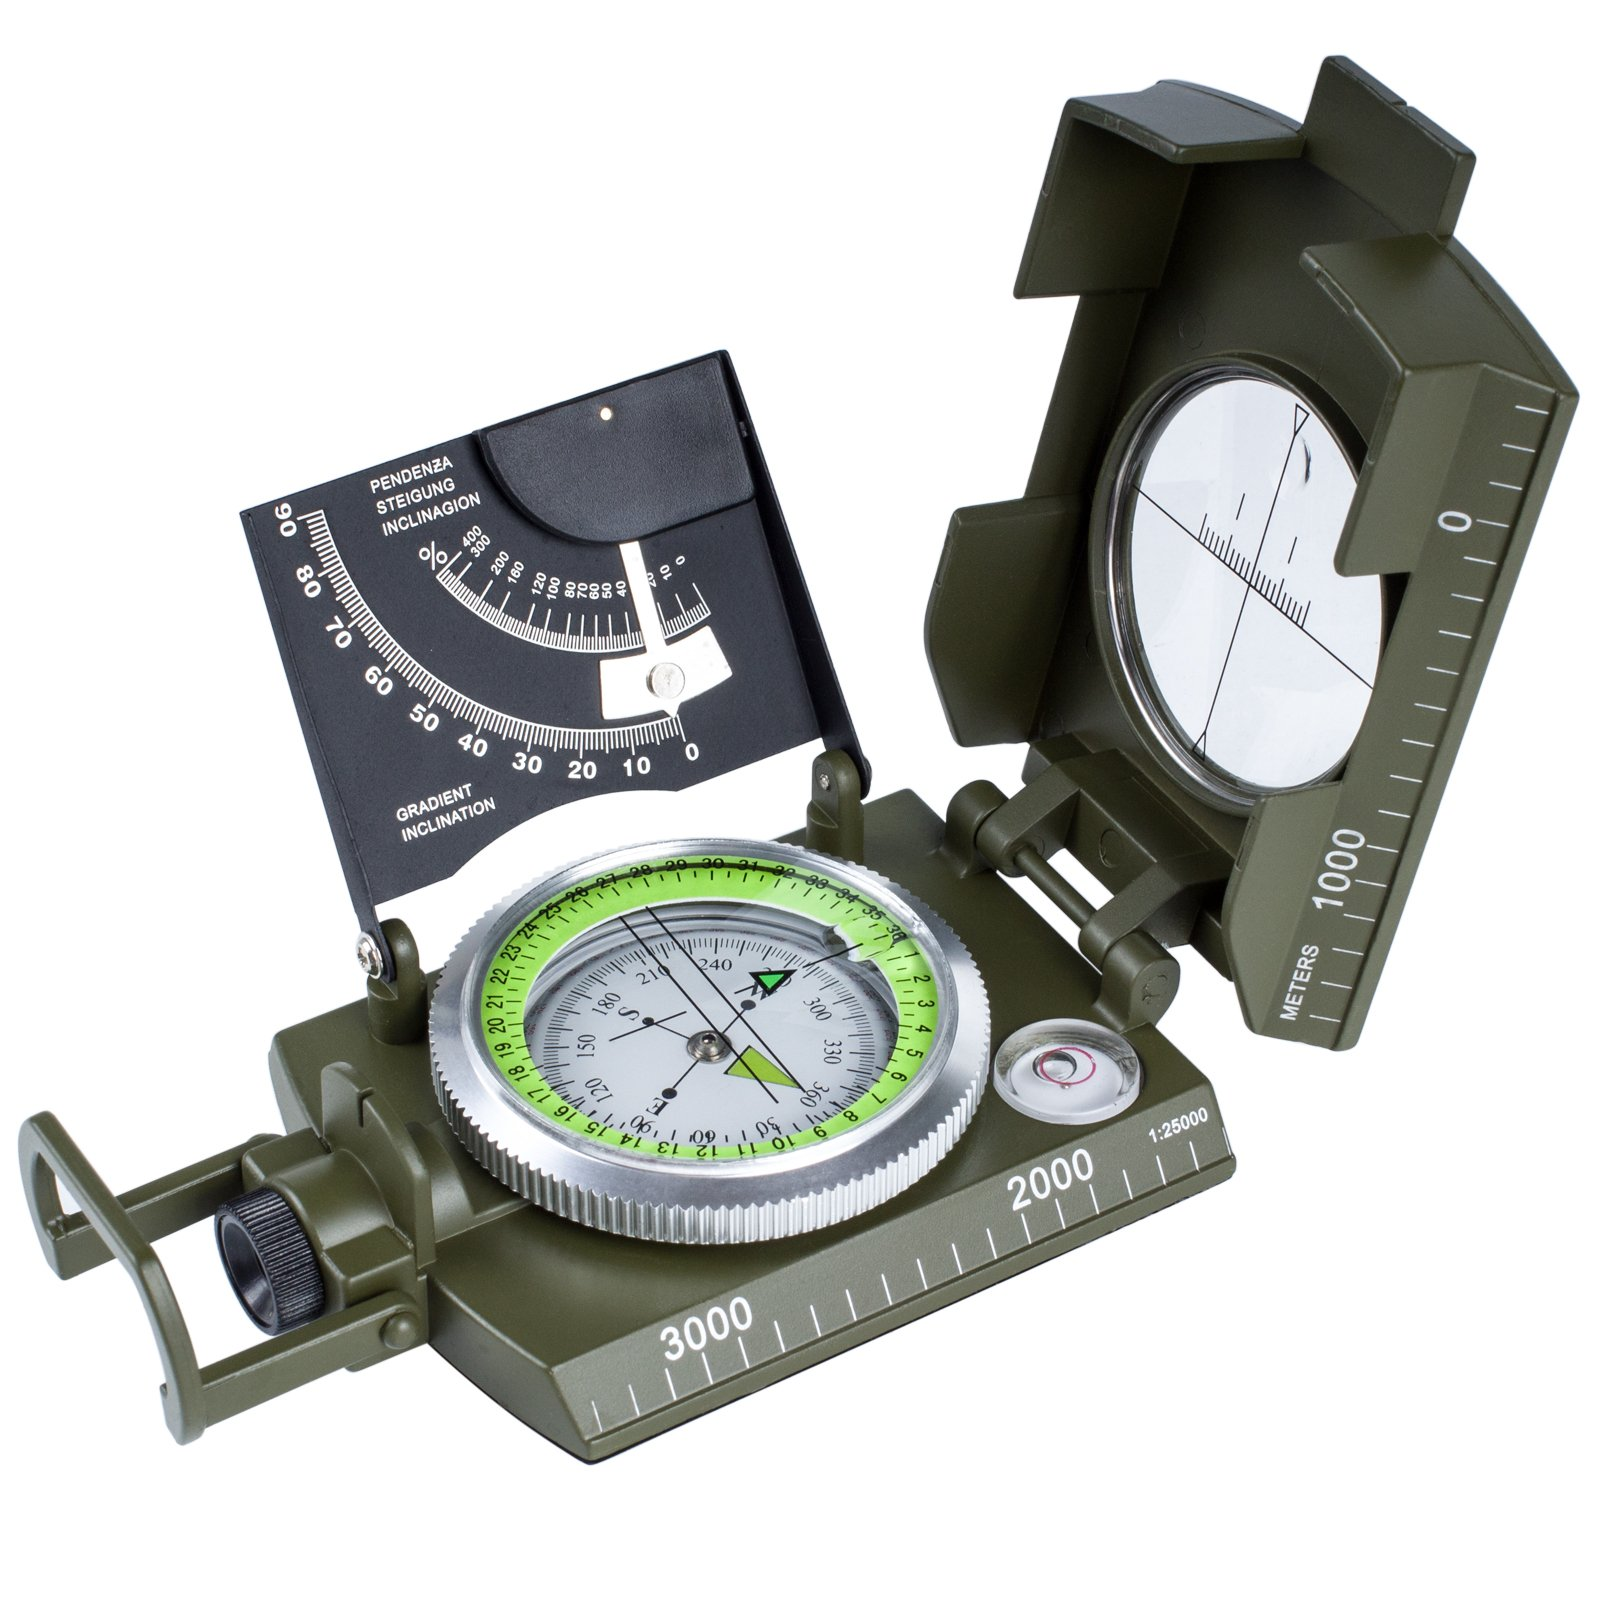 Oriketech Compass Waterproof Mini Compass with Inclinometer Multifunction Military and Pouch Lanyard Metal Army Sighting Compass for Outdoor Camping Hiking Compass Walking Biking Army Green by Oriketech